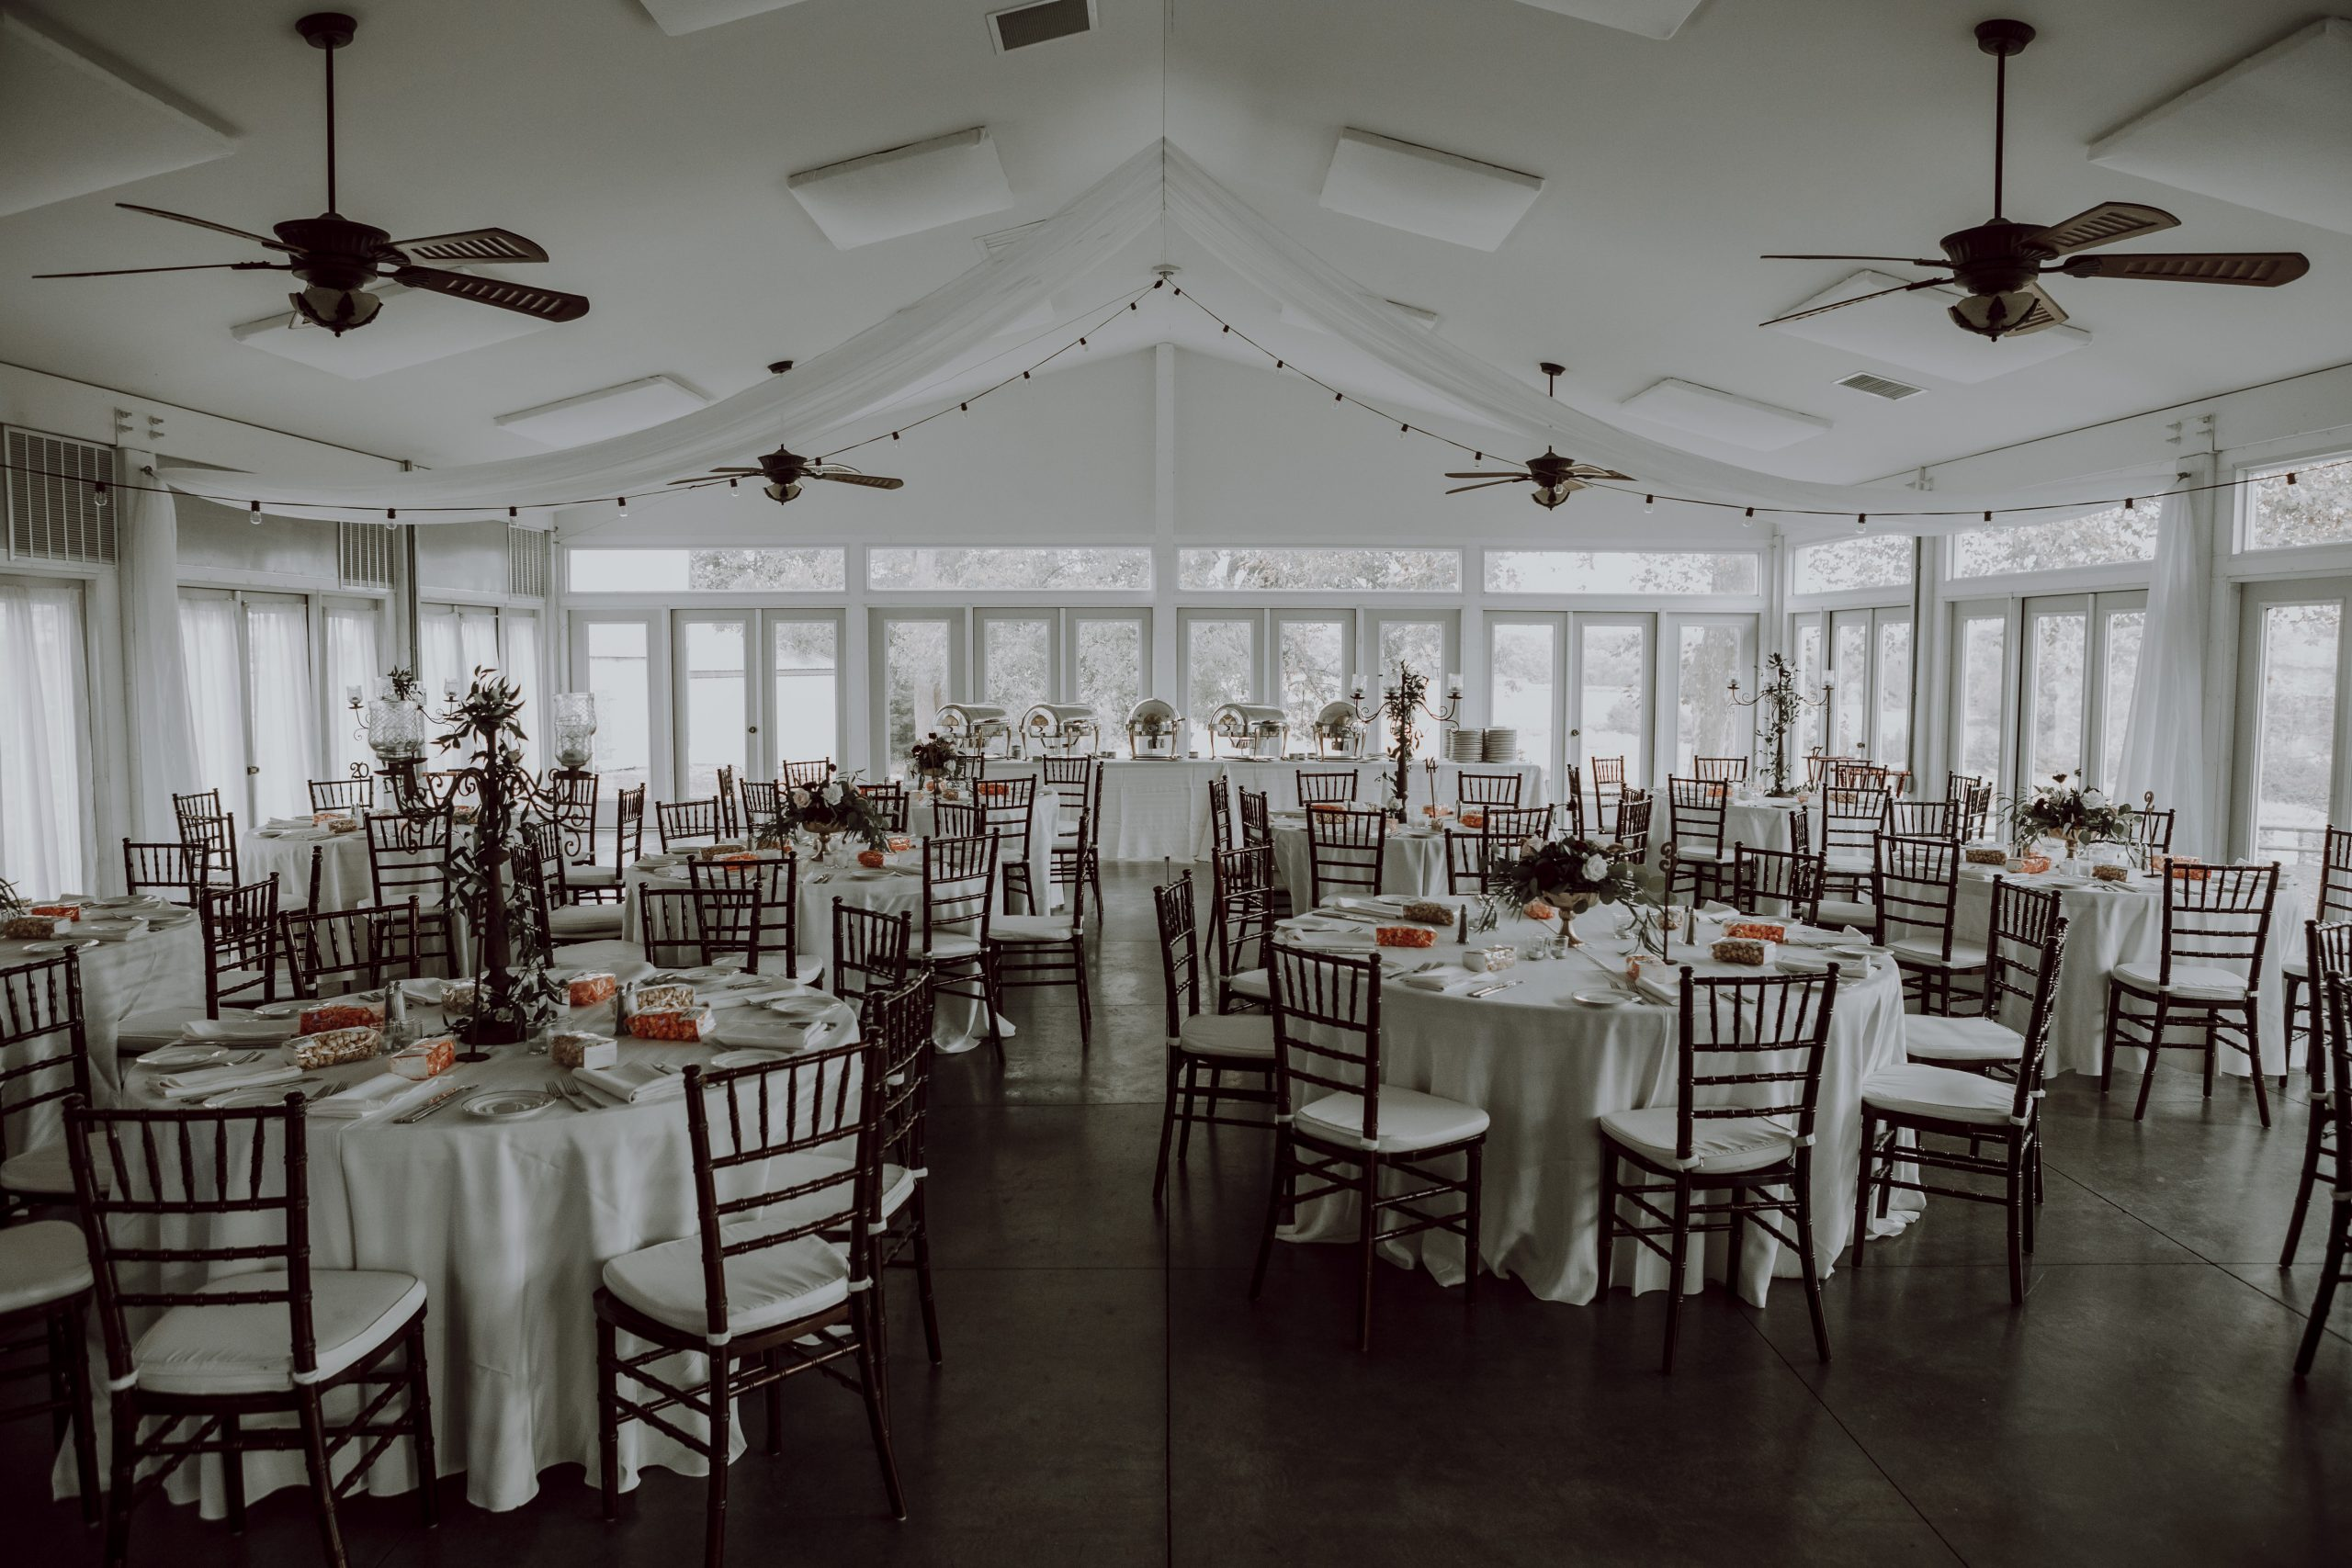 Space is key when renting a reception hall. Captured by Lovefusion Photography at Stock's Manor in Mechanicsburg, PA. Featured on Dream Weddings.